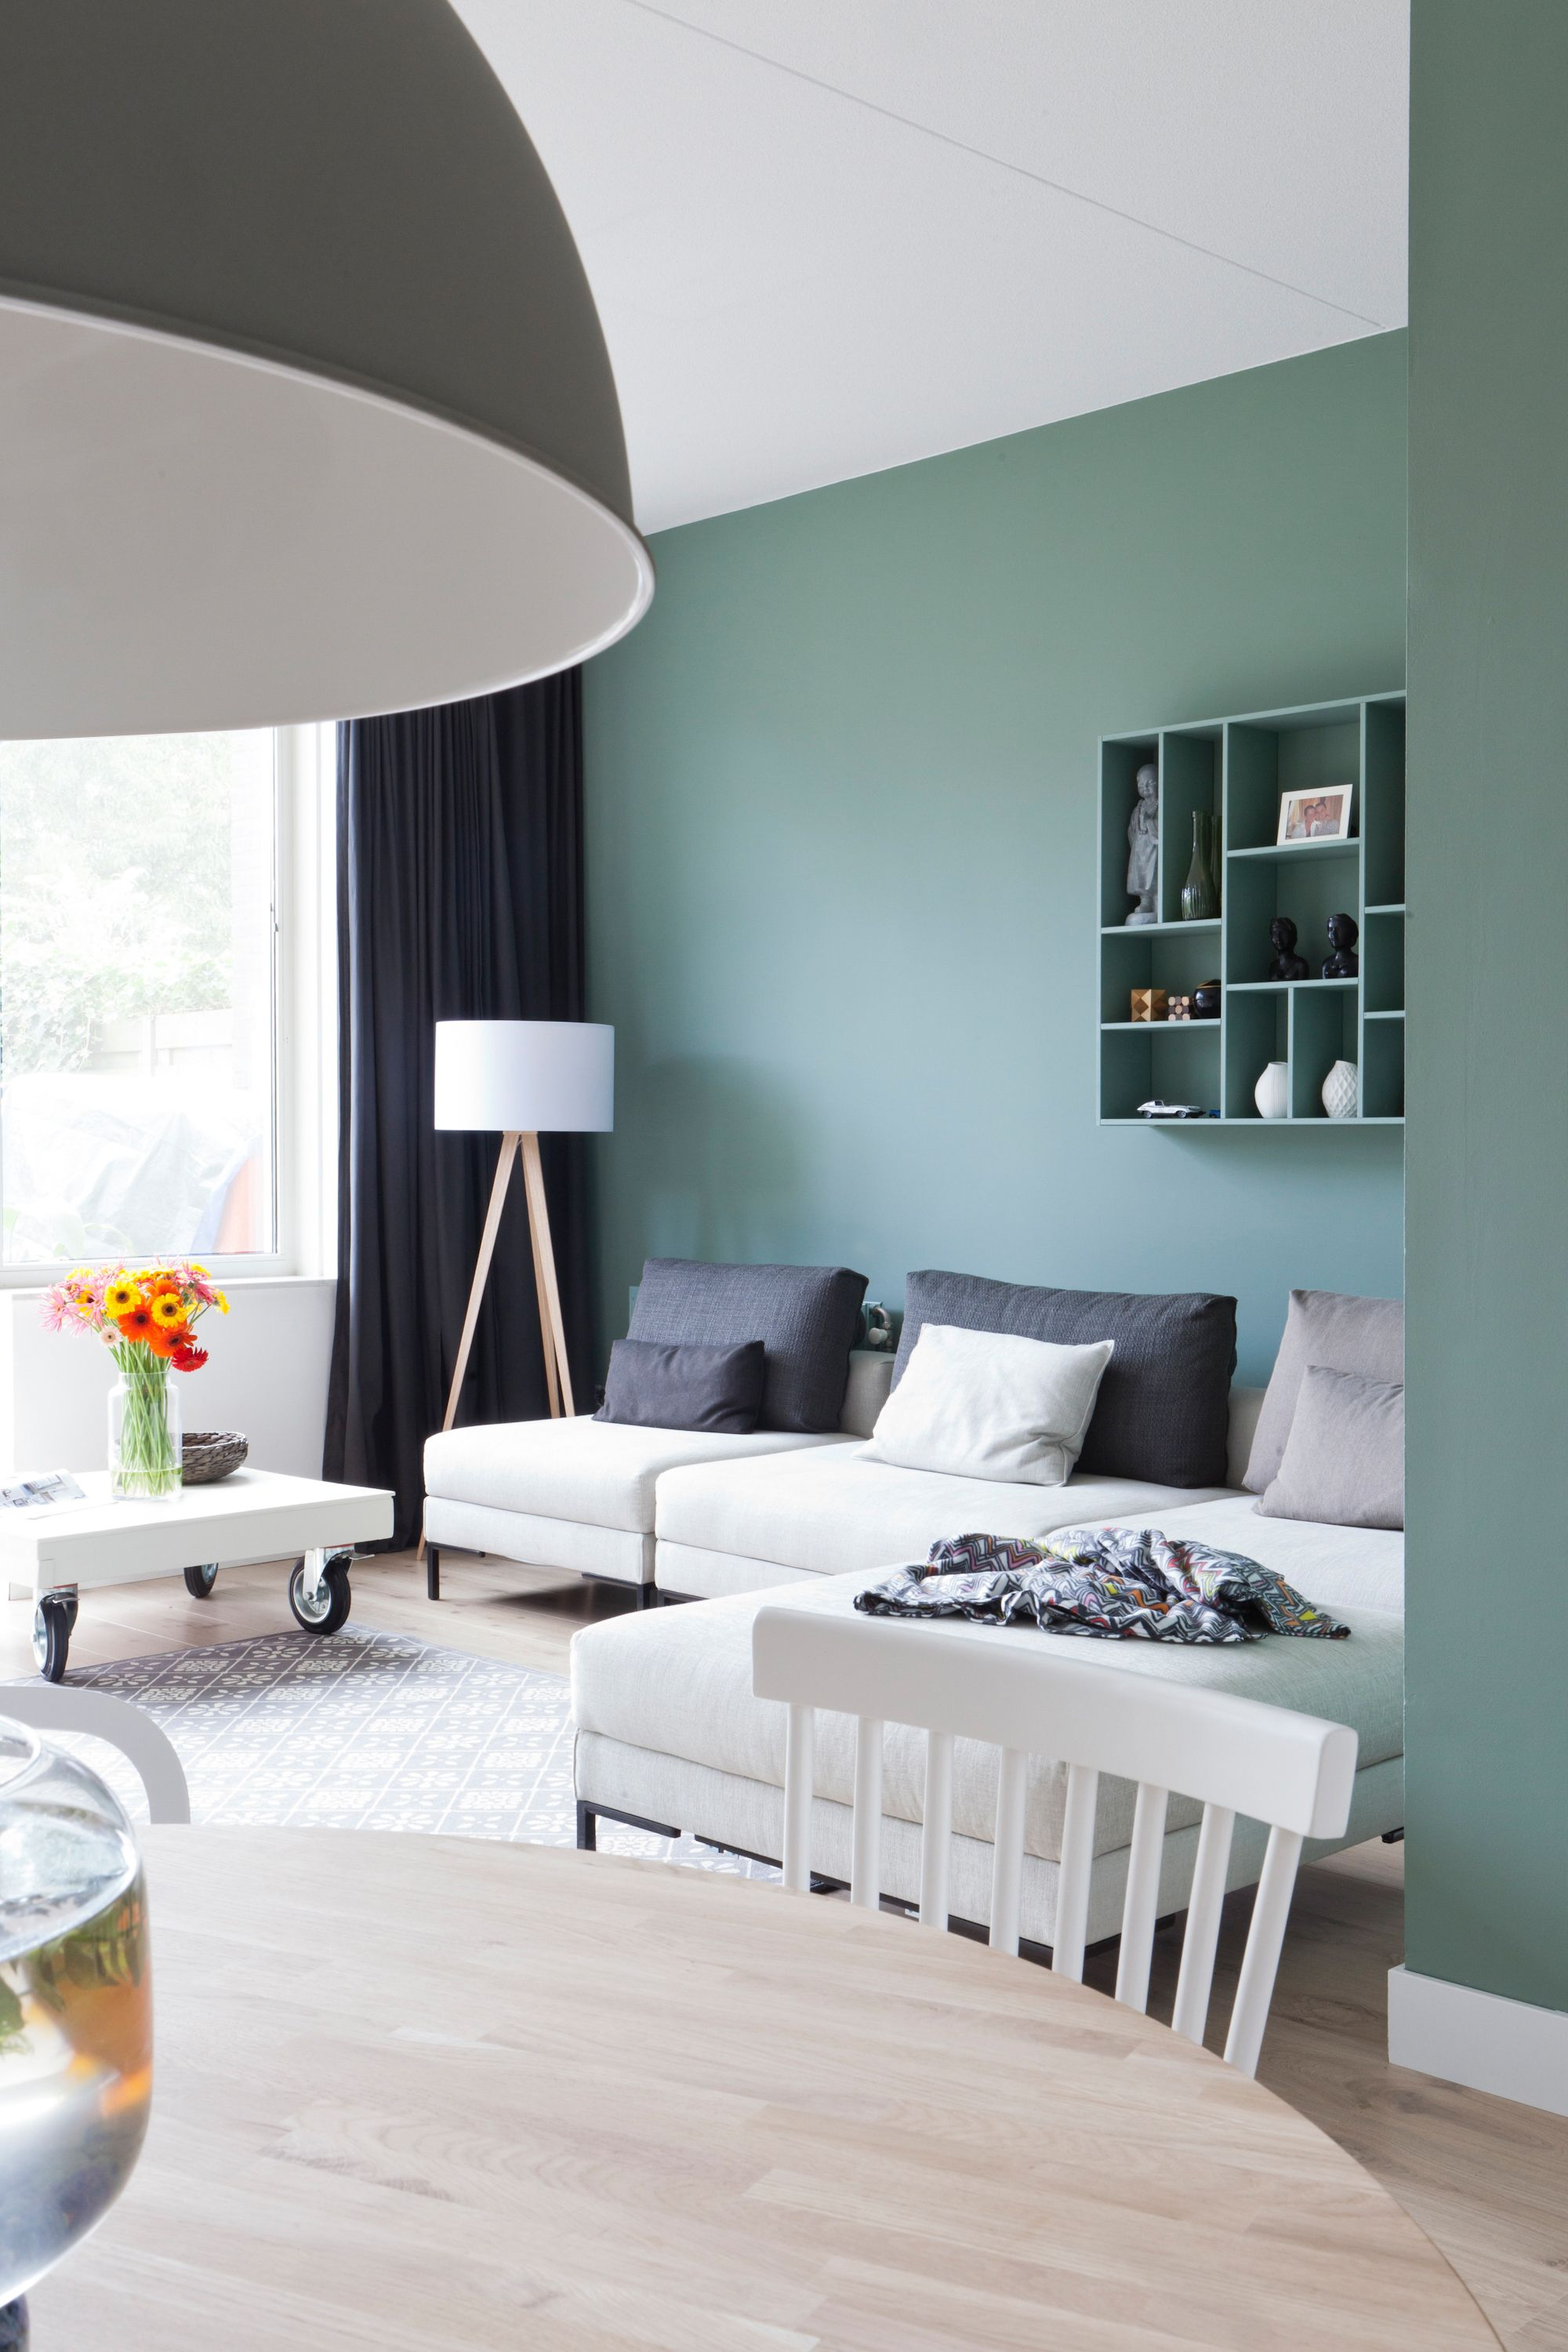 Modern turquoise green grey and white design Dutch